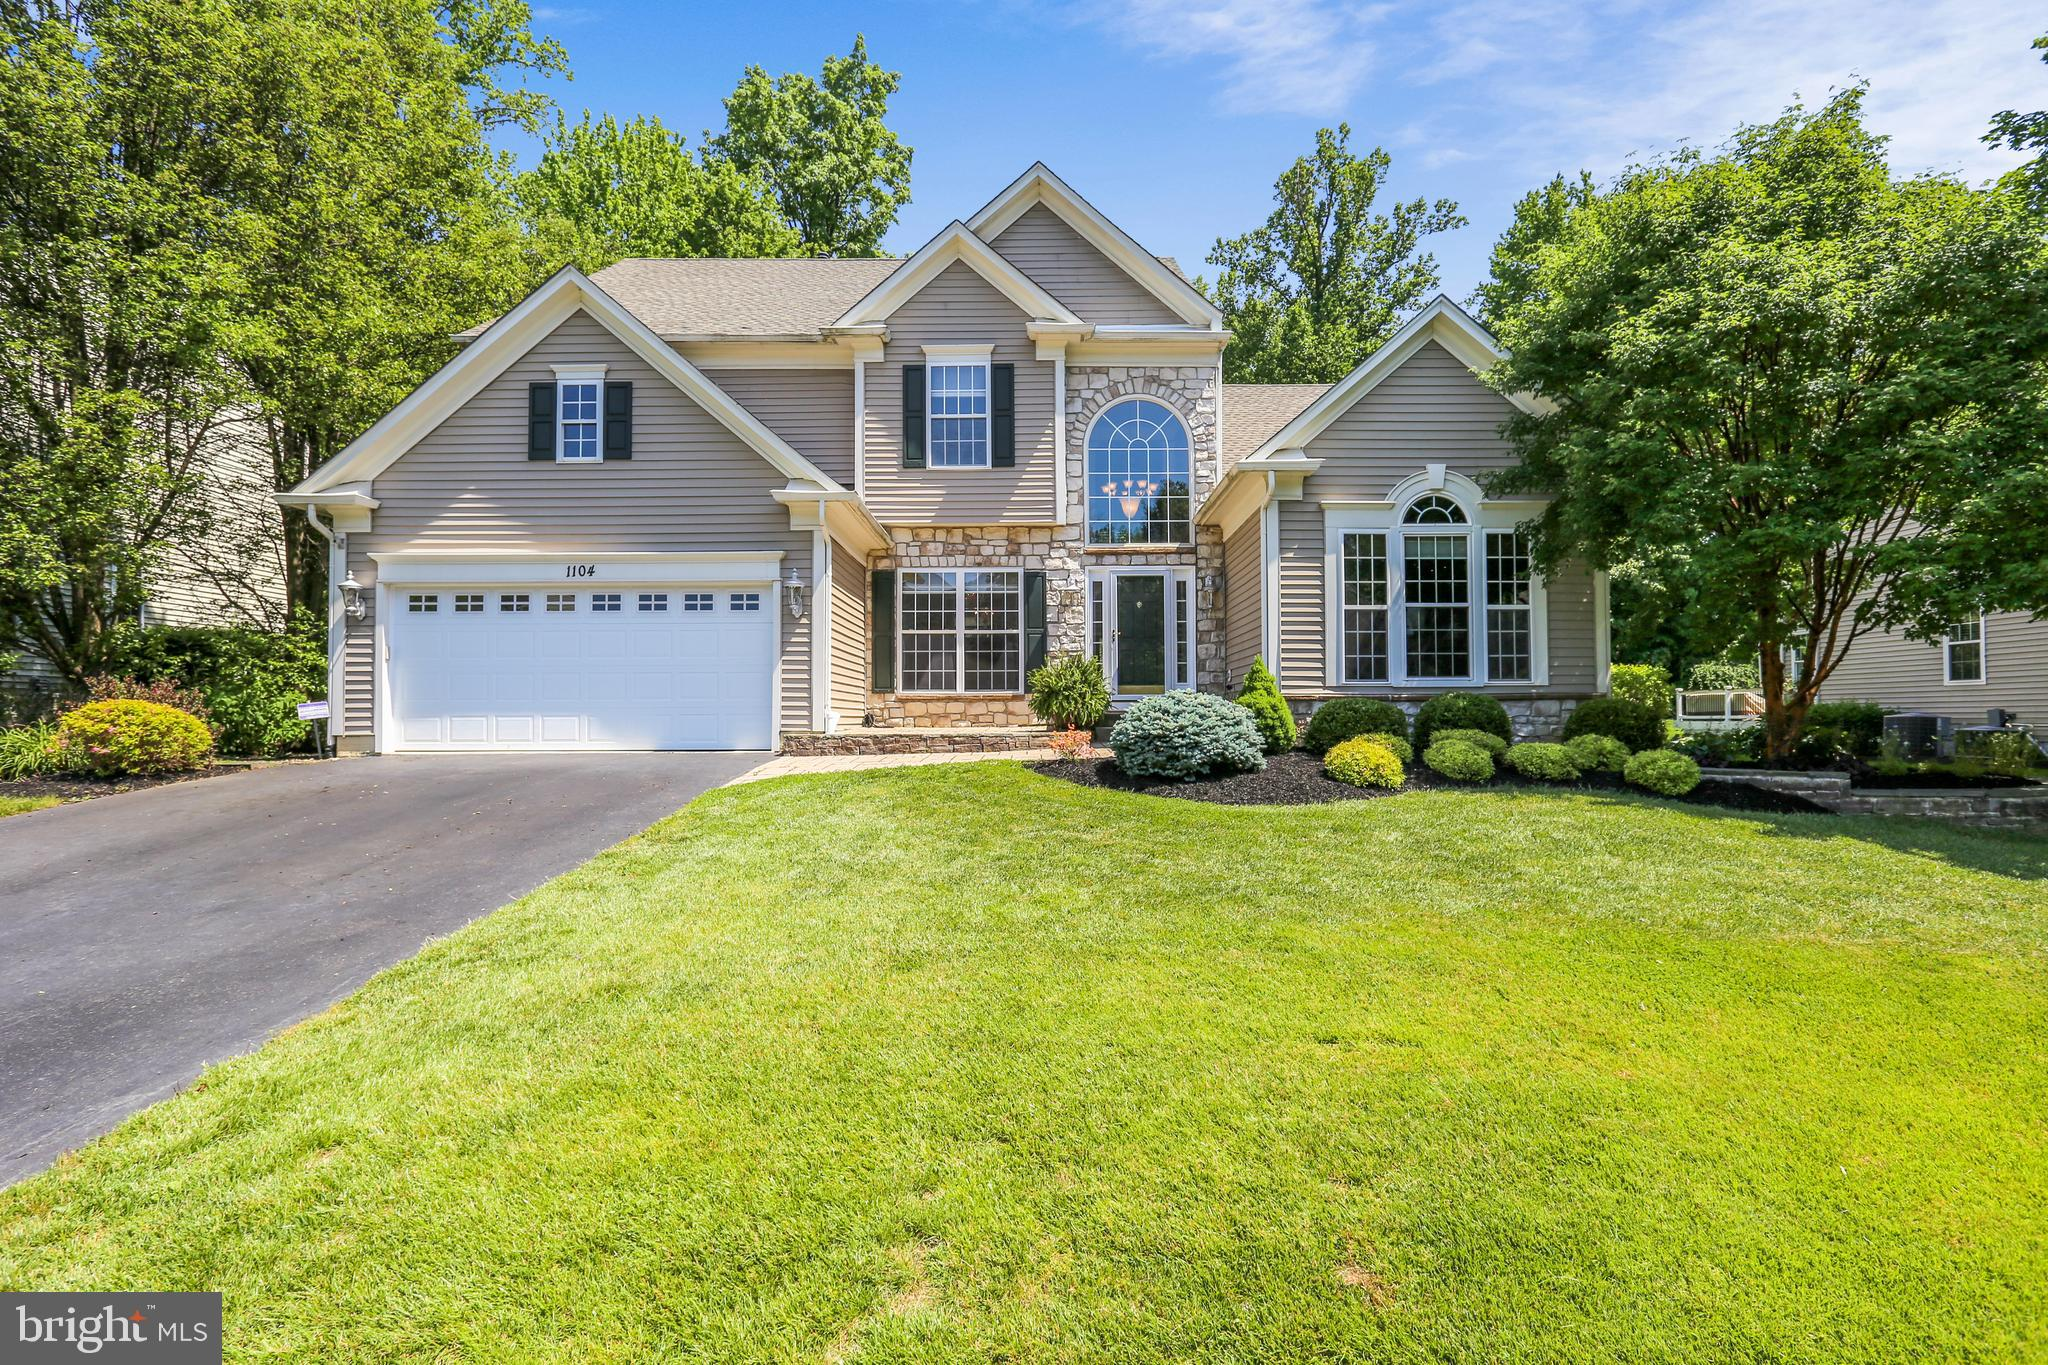 1104 Saddleback Wy, Bel Air, MD, 21014